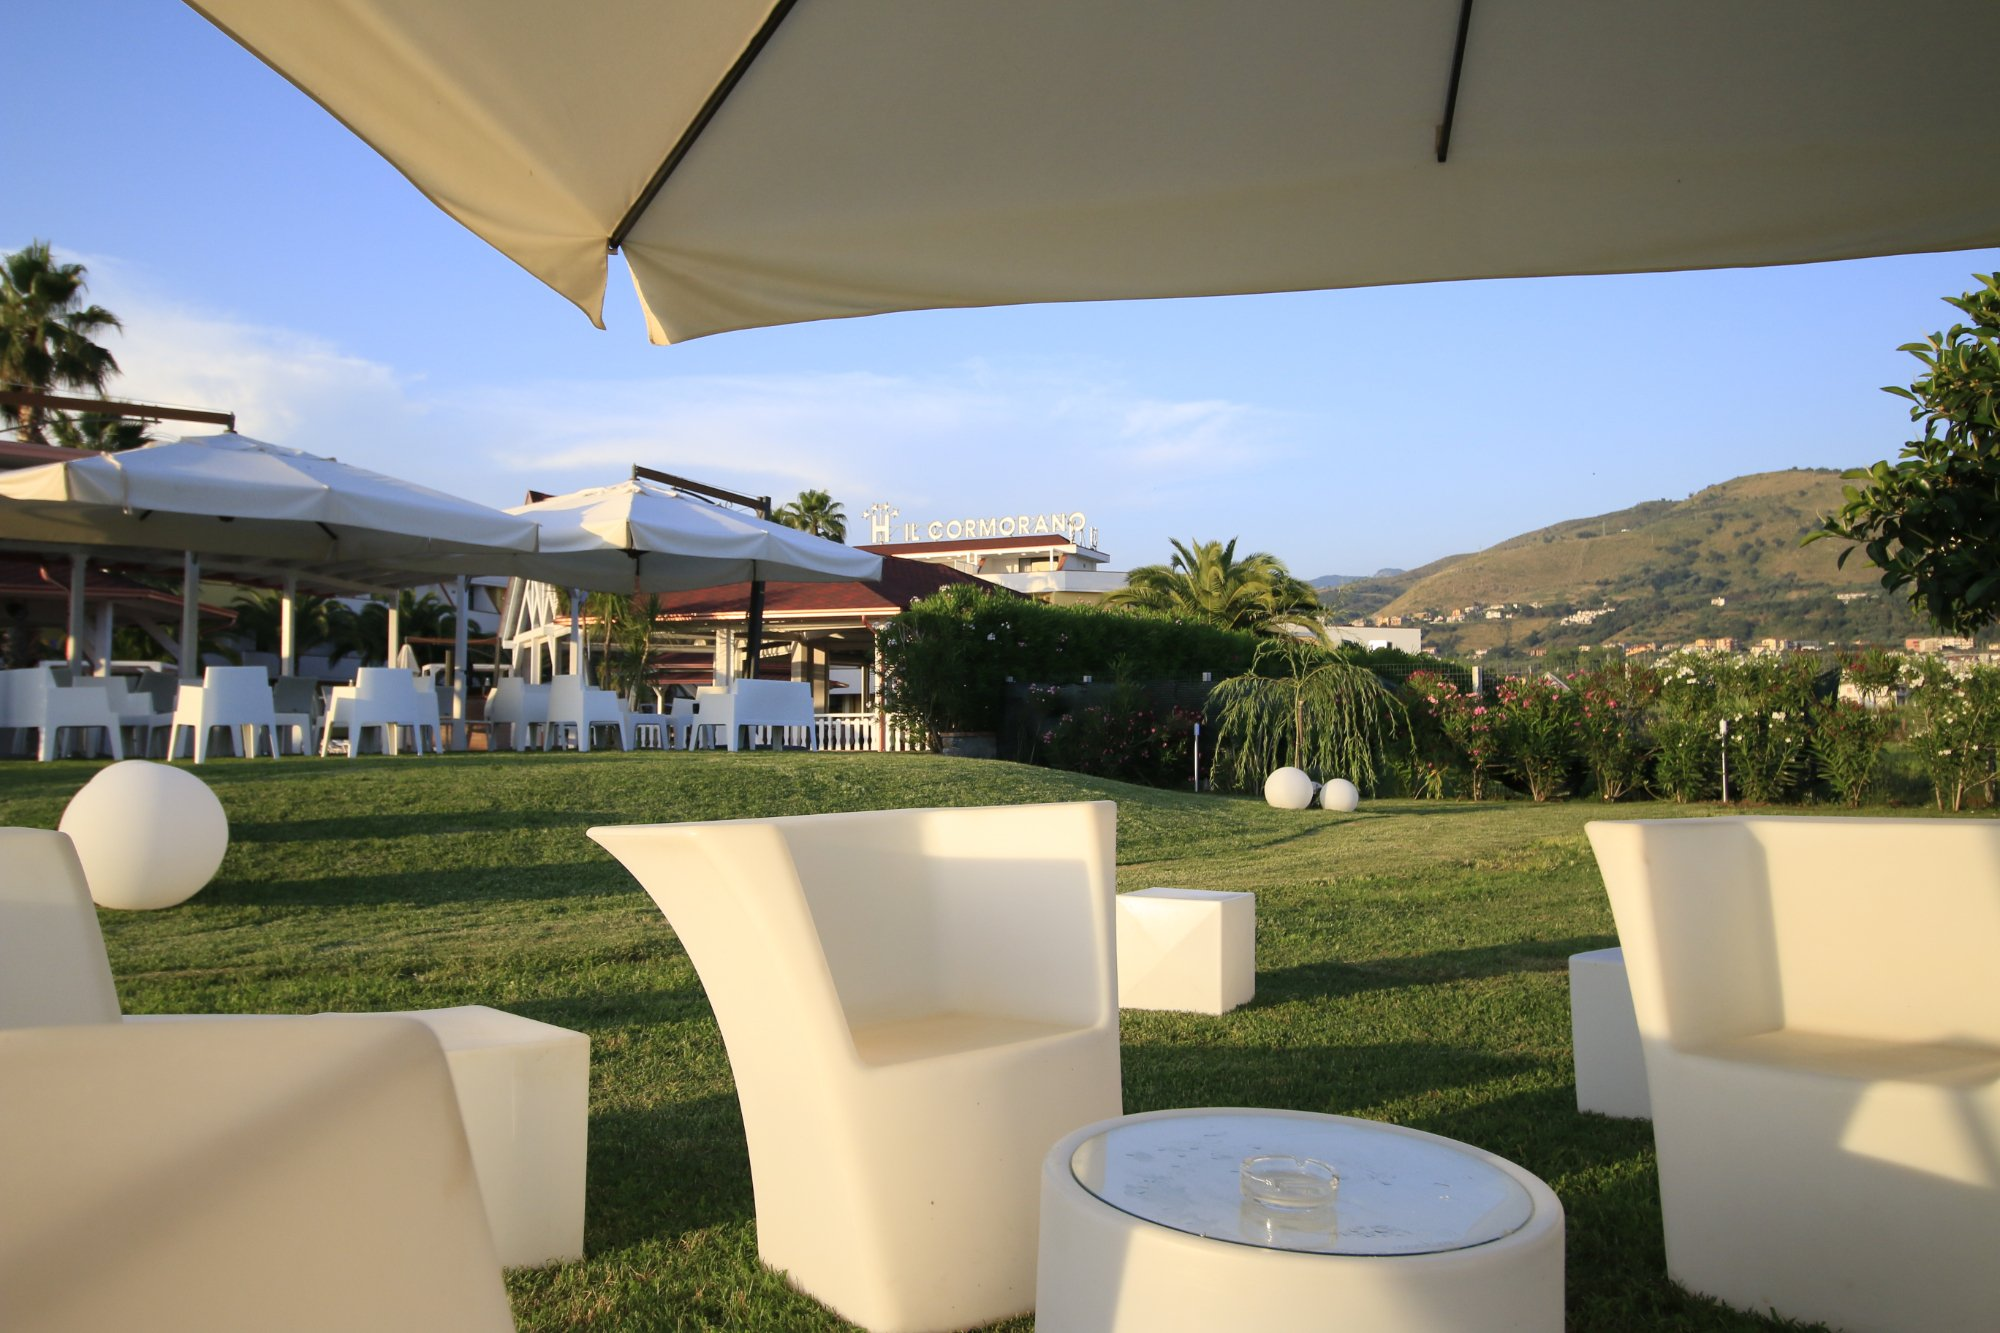 Il Cormorano Exclusive Club & Spa